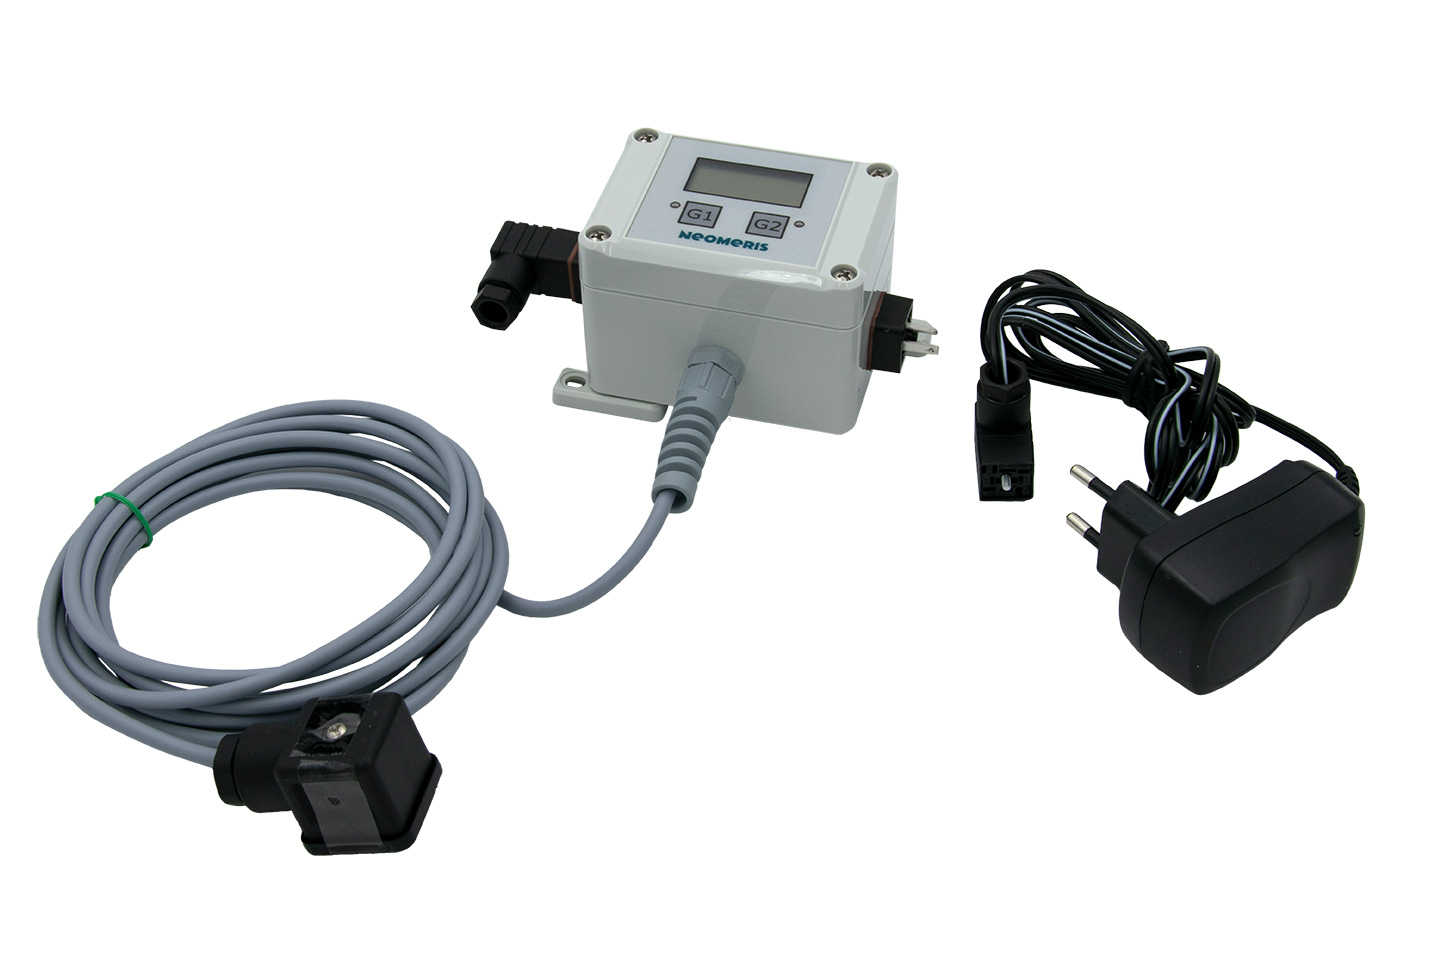 N-LFW, conductivity measuring instrument with 3m hardwired connection cable